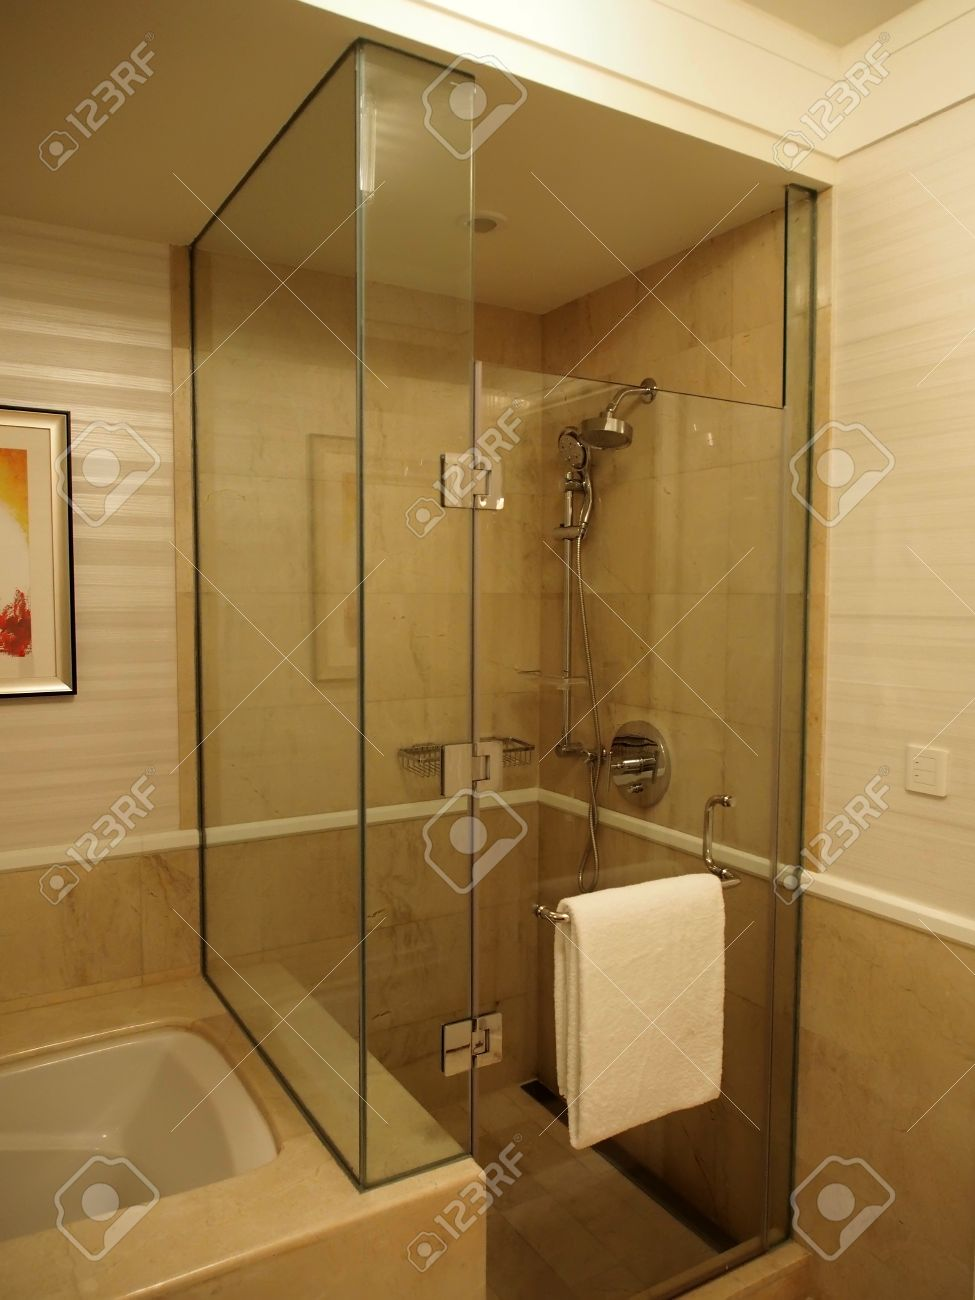 Glass Enclosed Shower Stall In Bathroom Stock Photo, Picture And ...